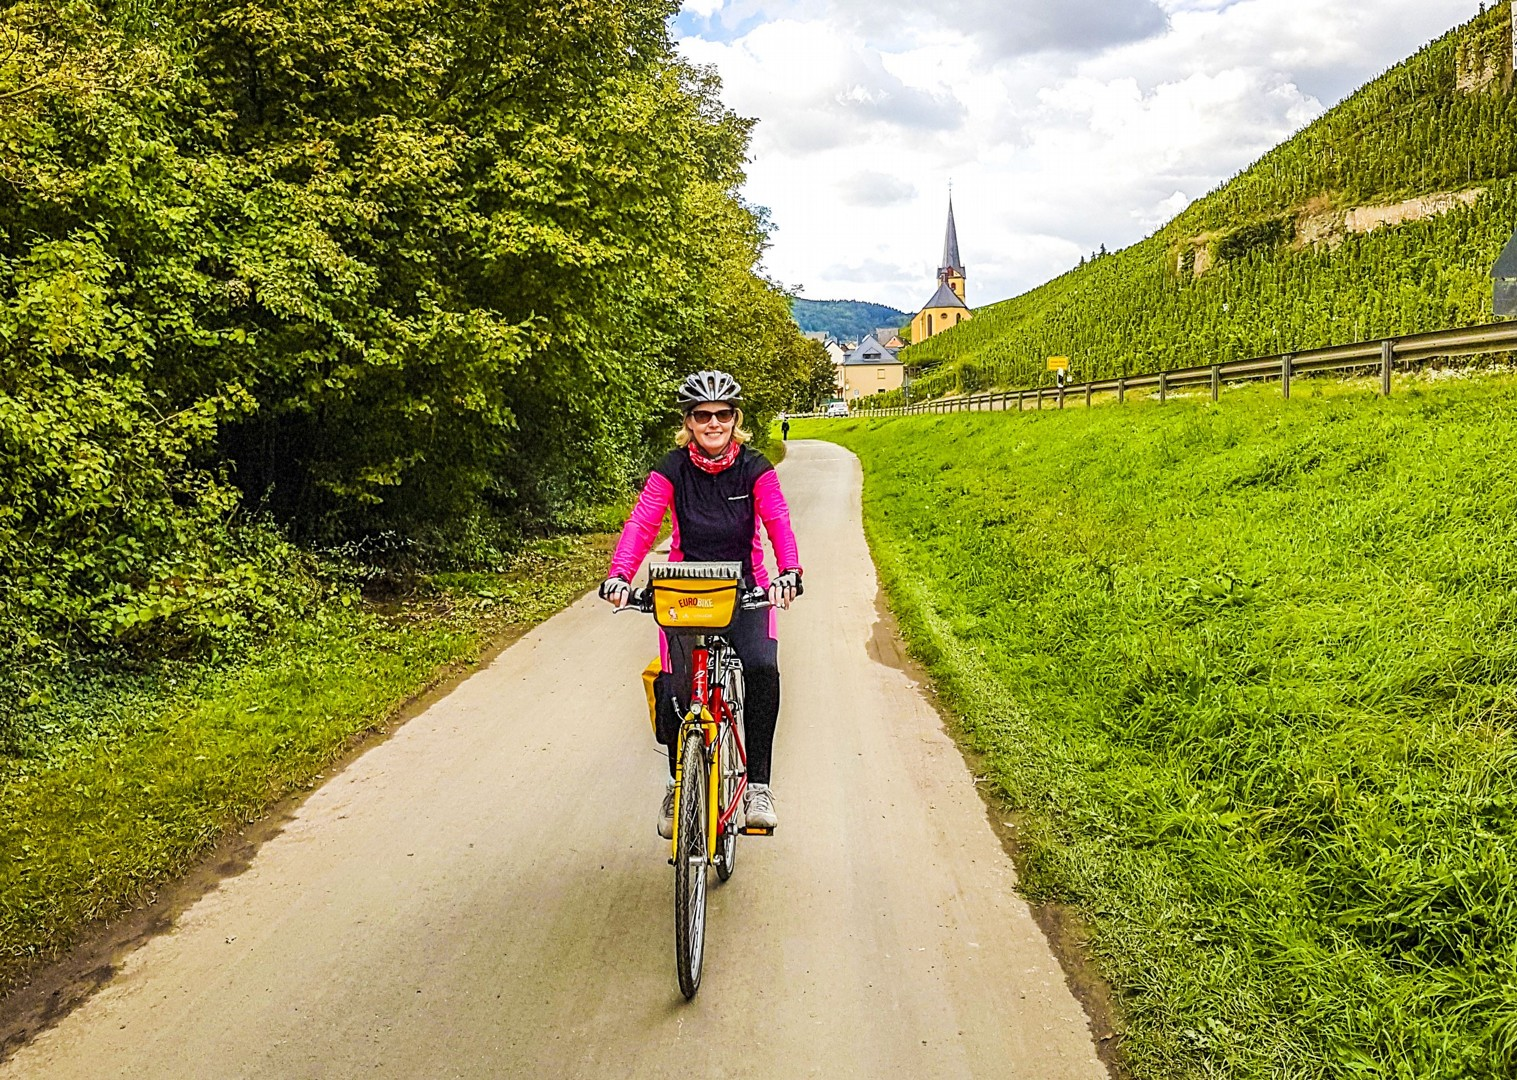 german-stunnning-scenery-happy-self-guided-cycling-tour.jpg - Germany - Moselle Valley - Self-Guided Leisure Cycling Holiday - Leisure Cycling